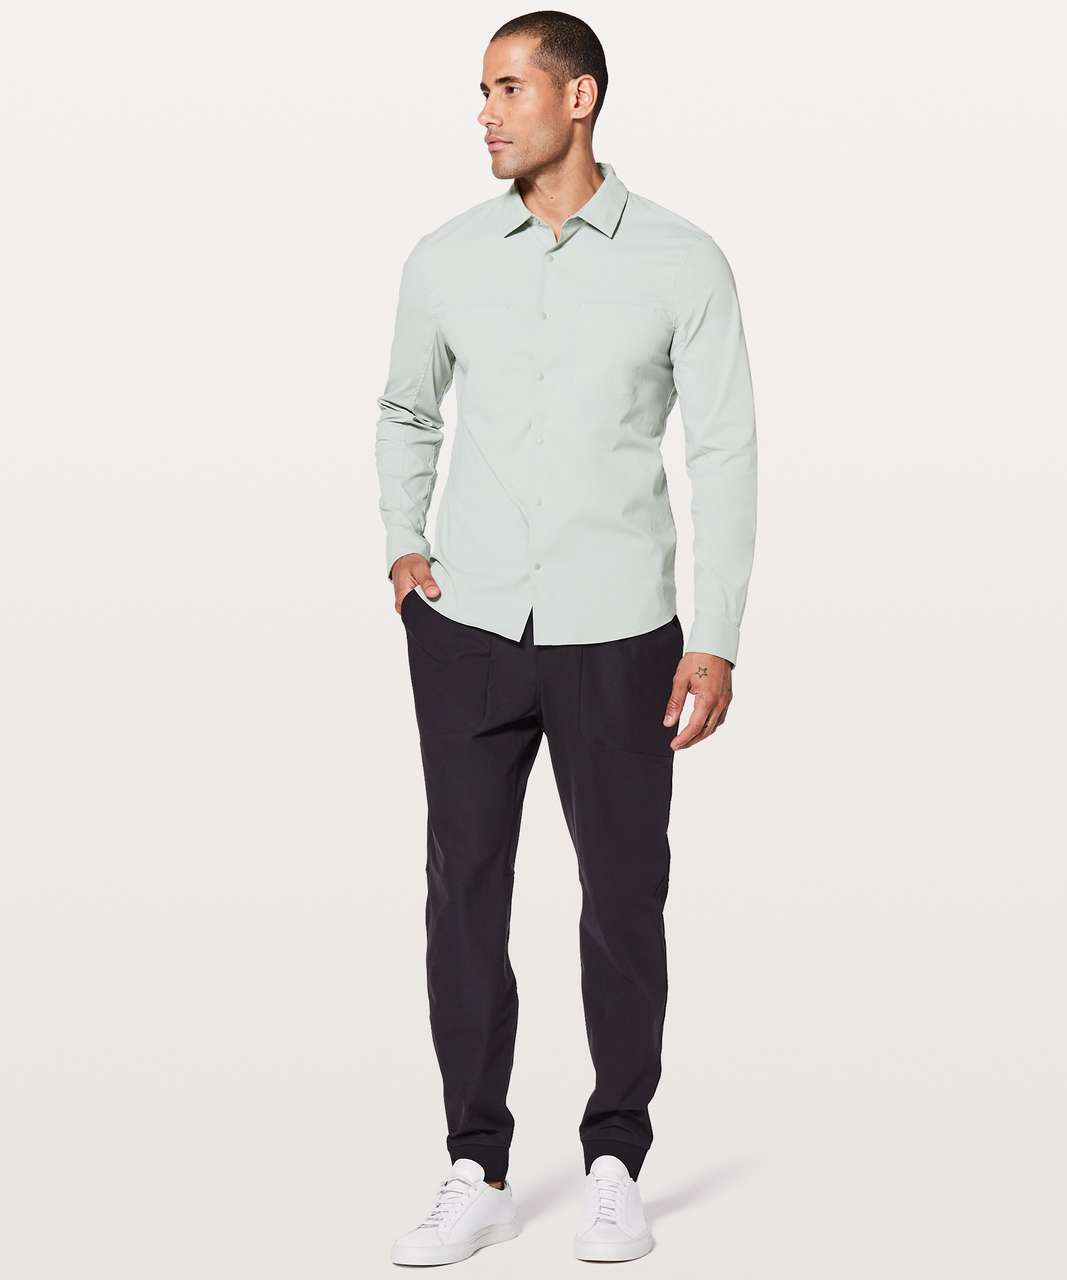 Lululemon Zenway Long Sleeve Buttondown - Sea Salt